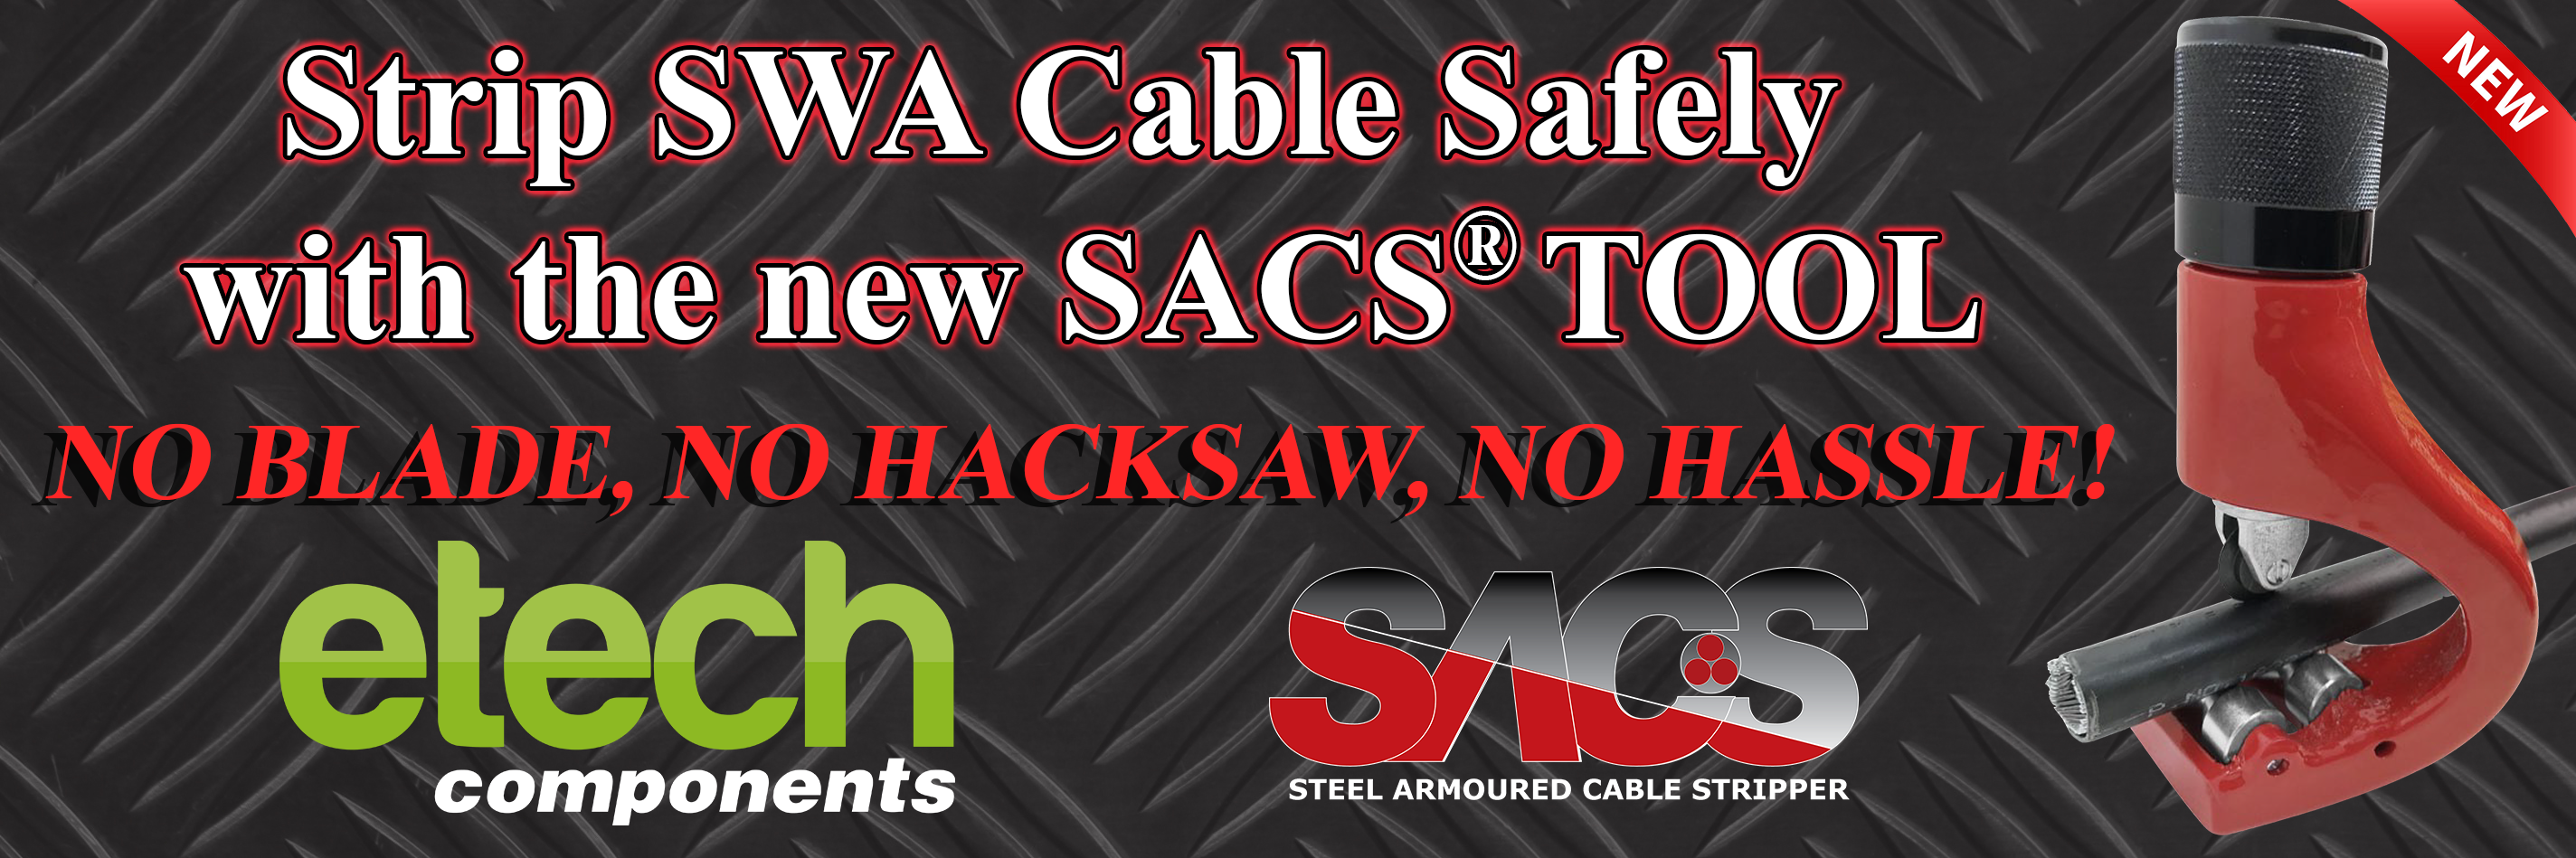 SACS Tool - Steel Wire Armoured Cable Stripping Tool - SWA Cable Stripper